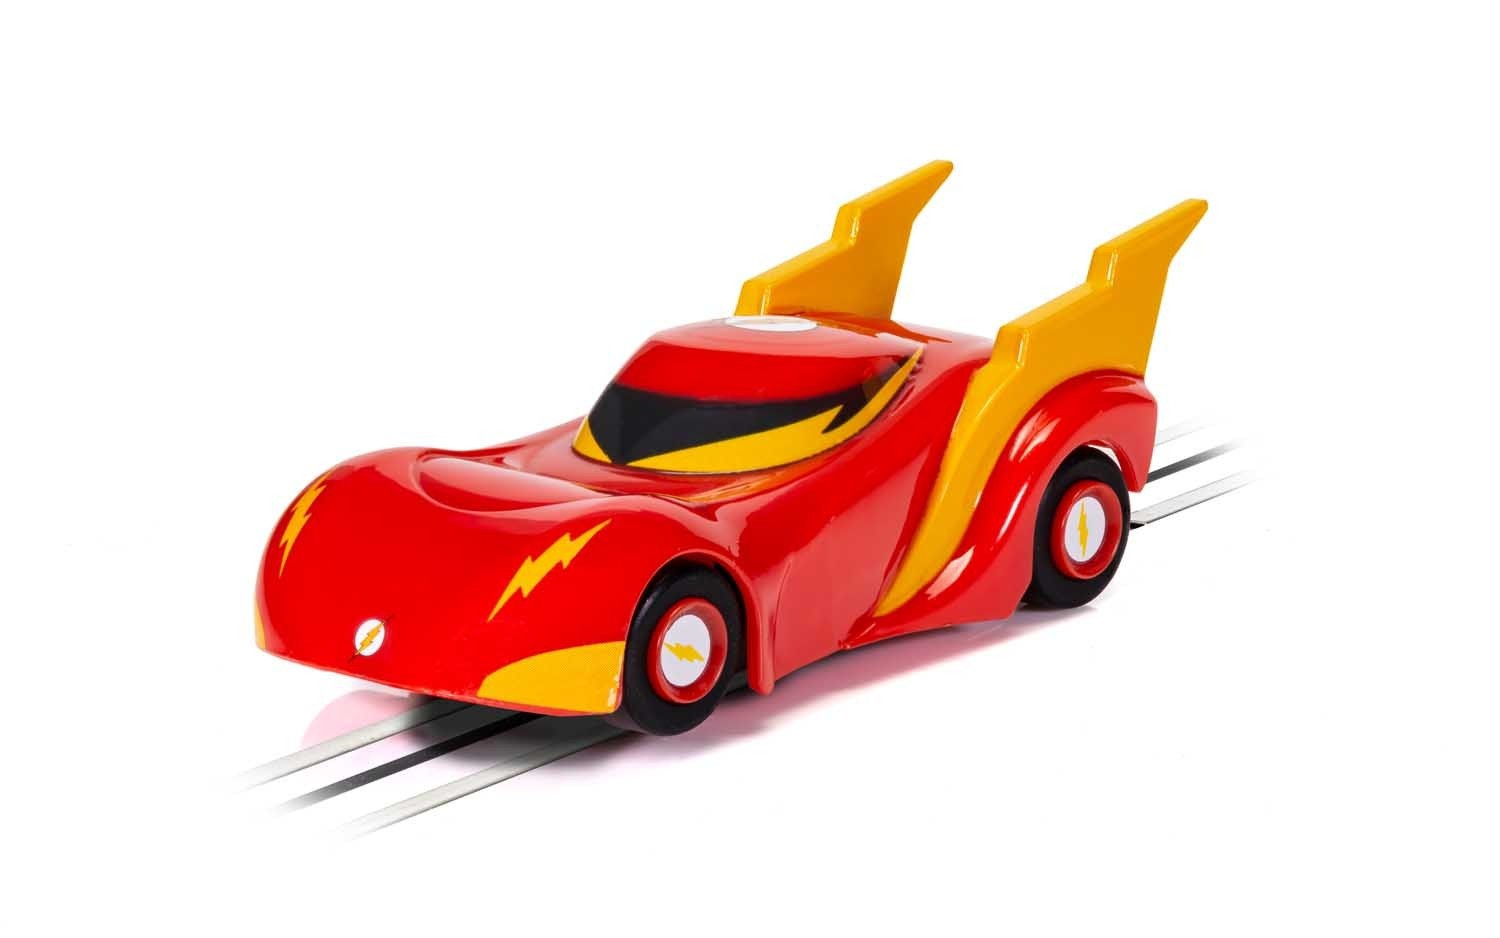 Micro Scalextric G2169 Justice League The Flash car